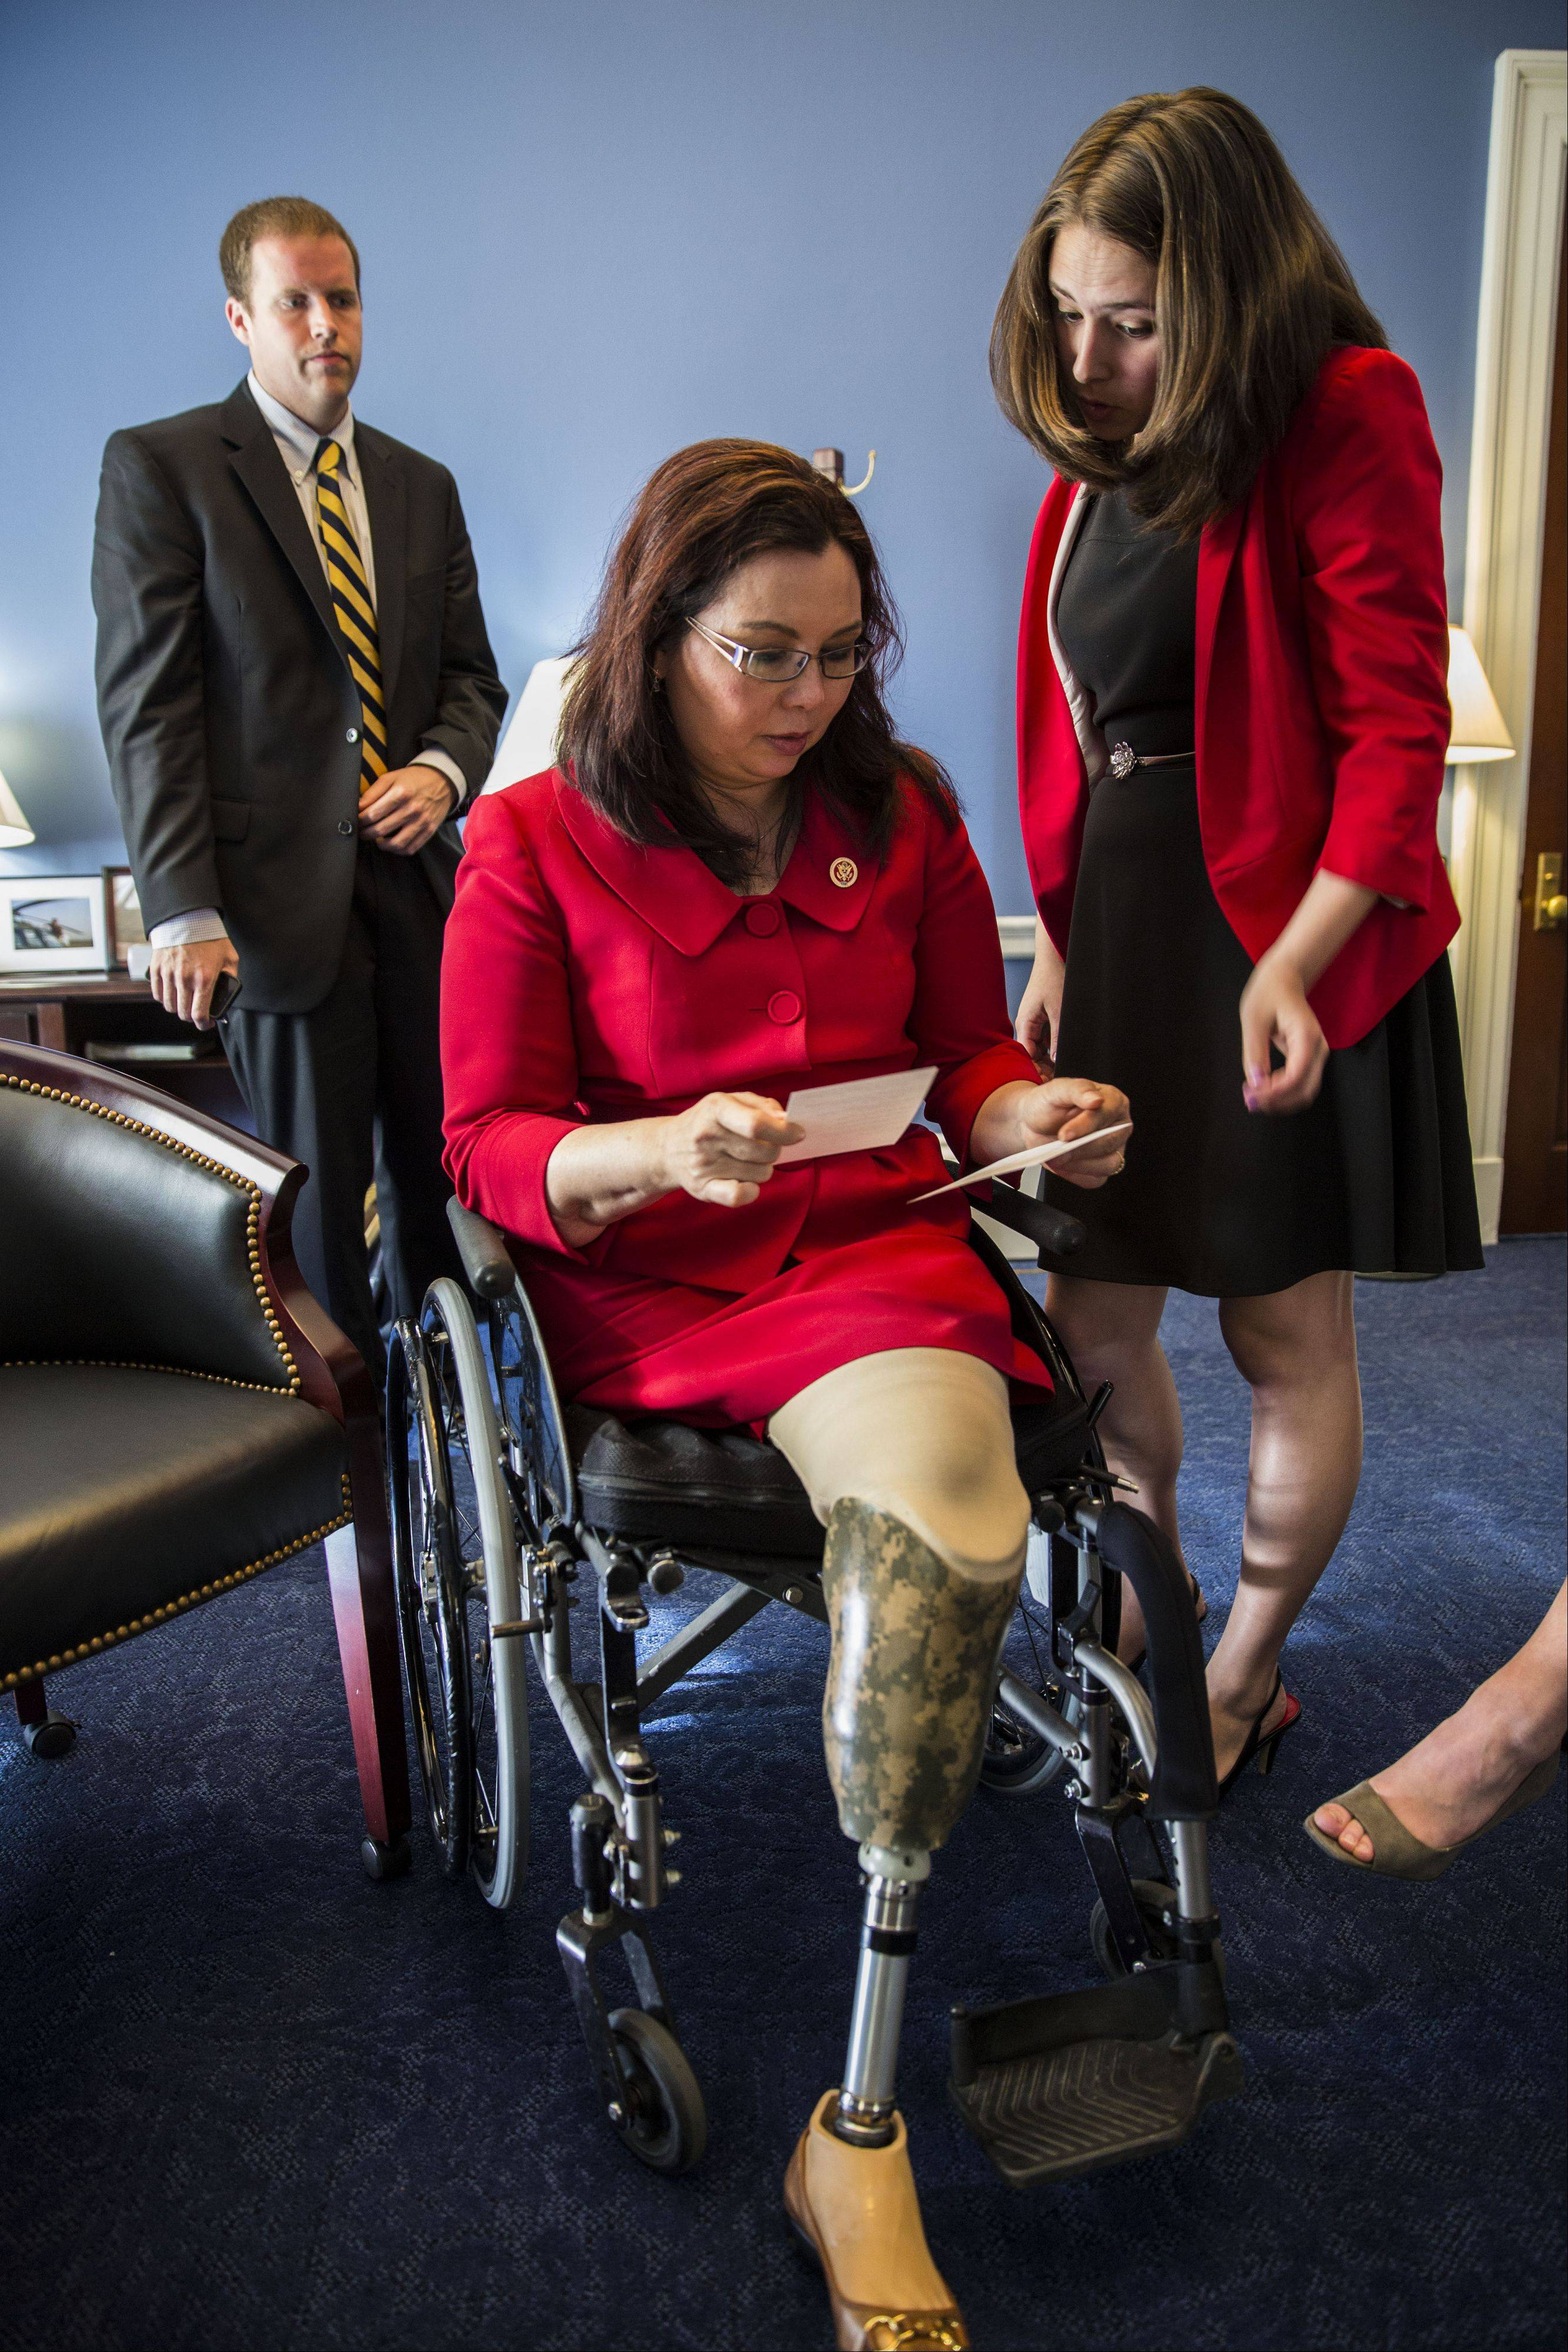 U.S. Rep. Tammy Duckworth of Hoffman Estates goes over constituent mail and scheduling with her staff in Washington, D.C.